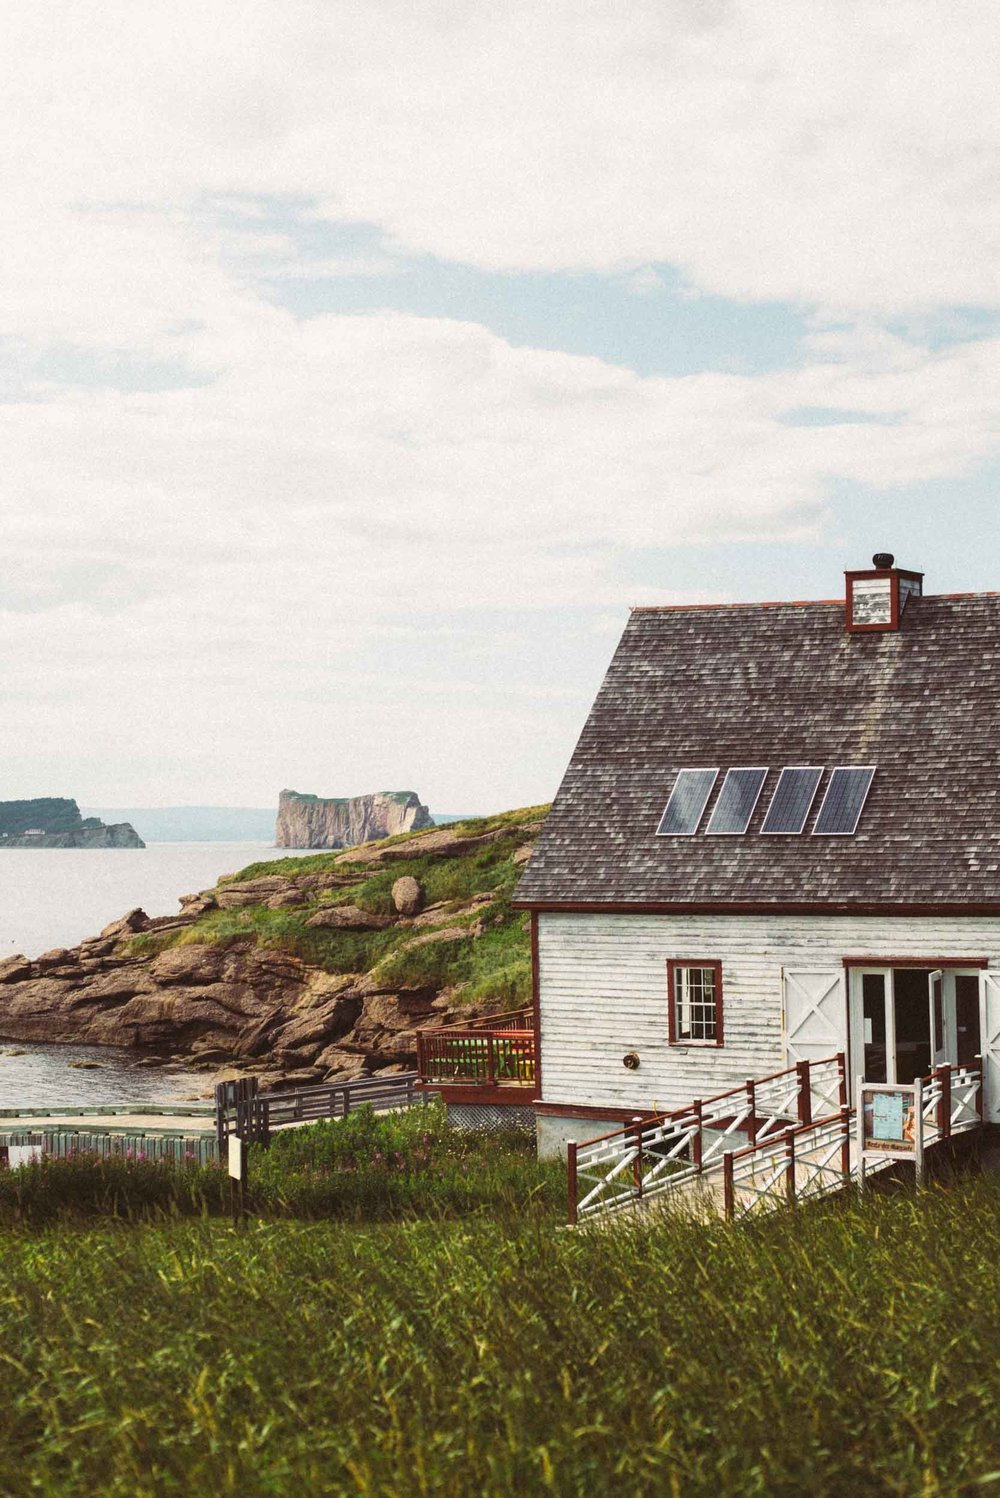 gaspesie-quebec-canada-travel-photographer-voyage-sara-megan-12.jpg